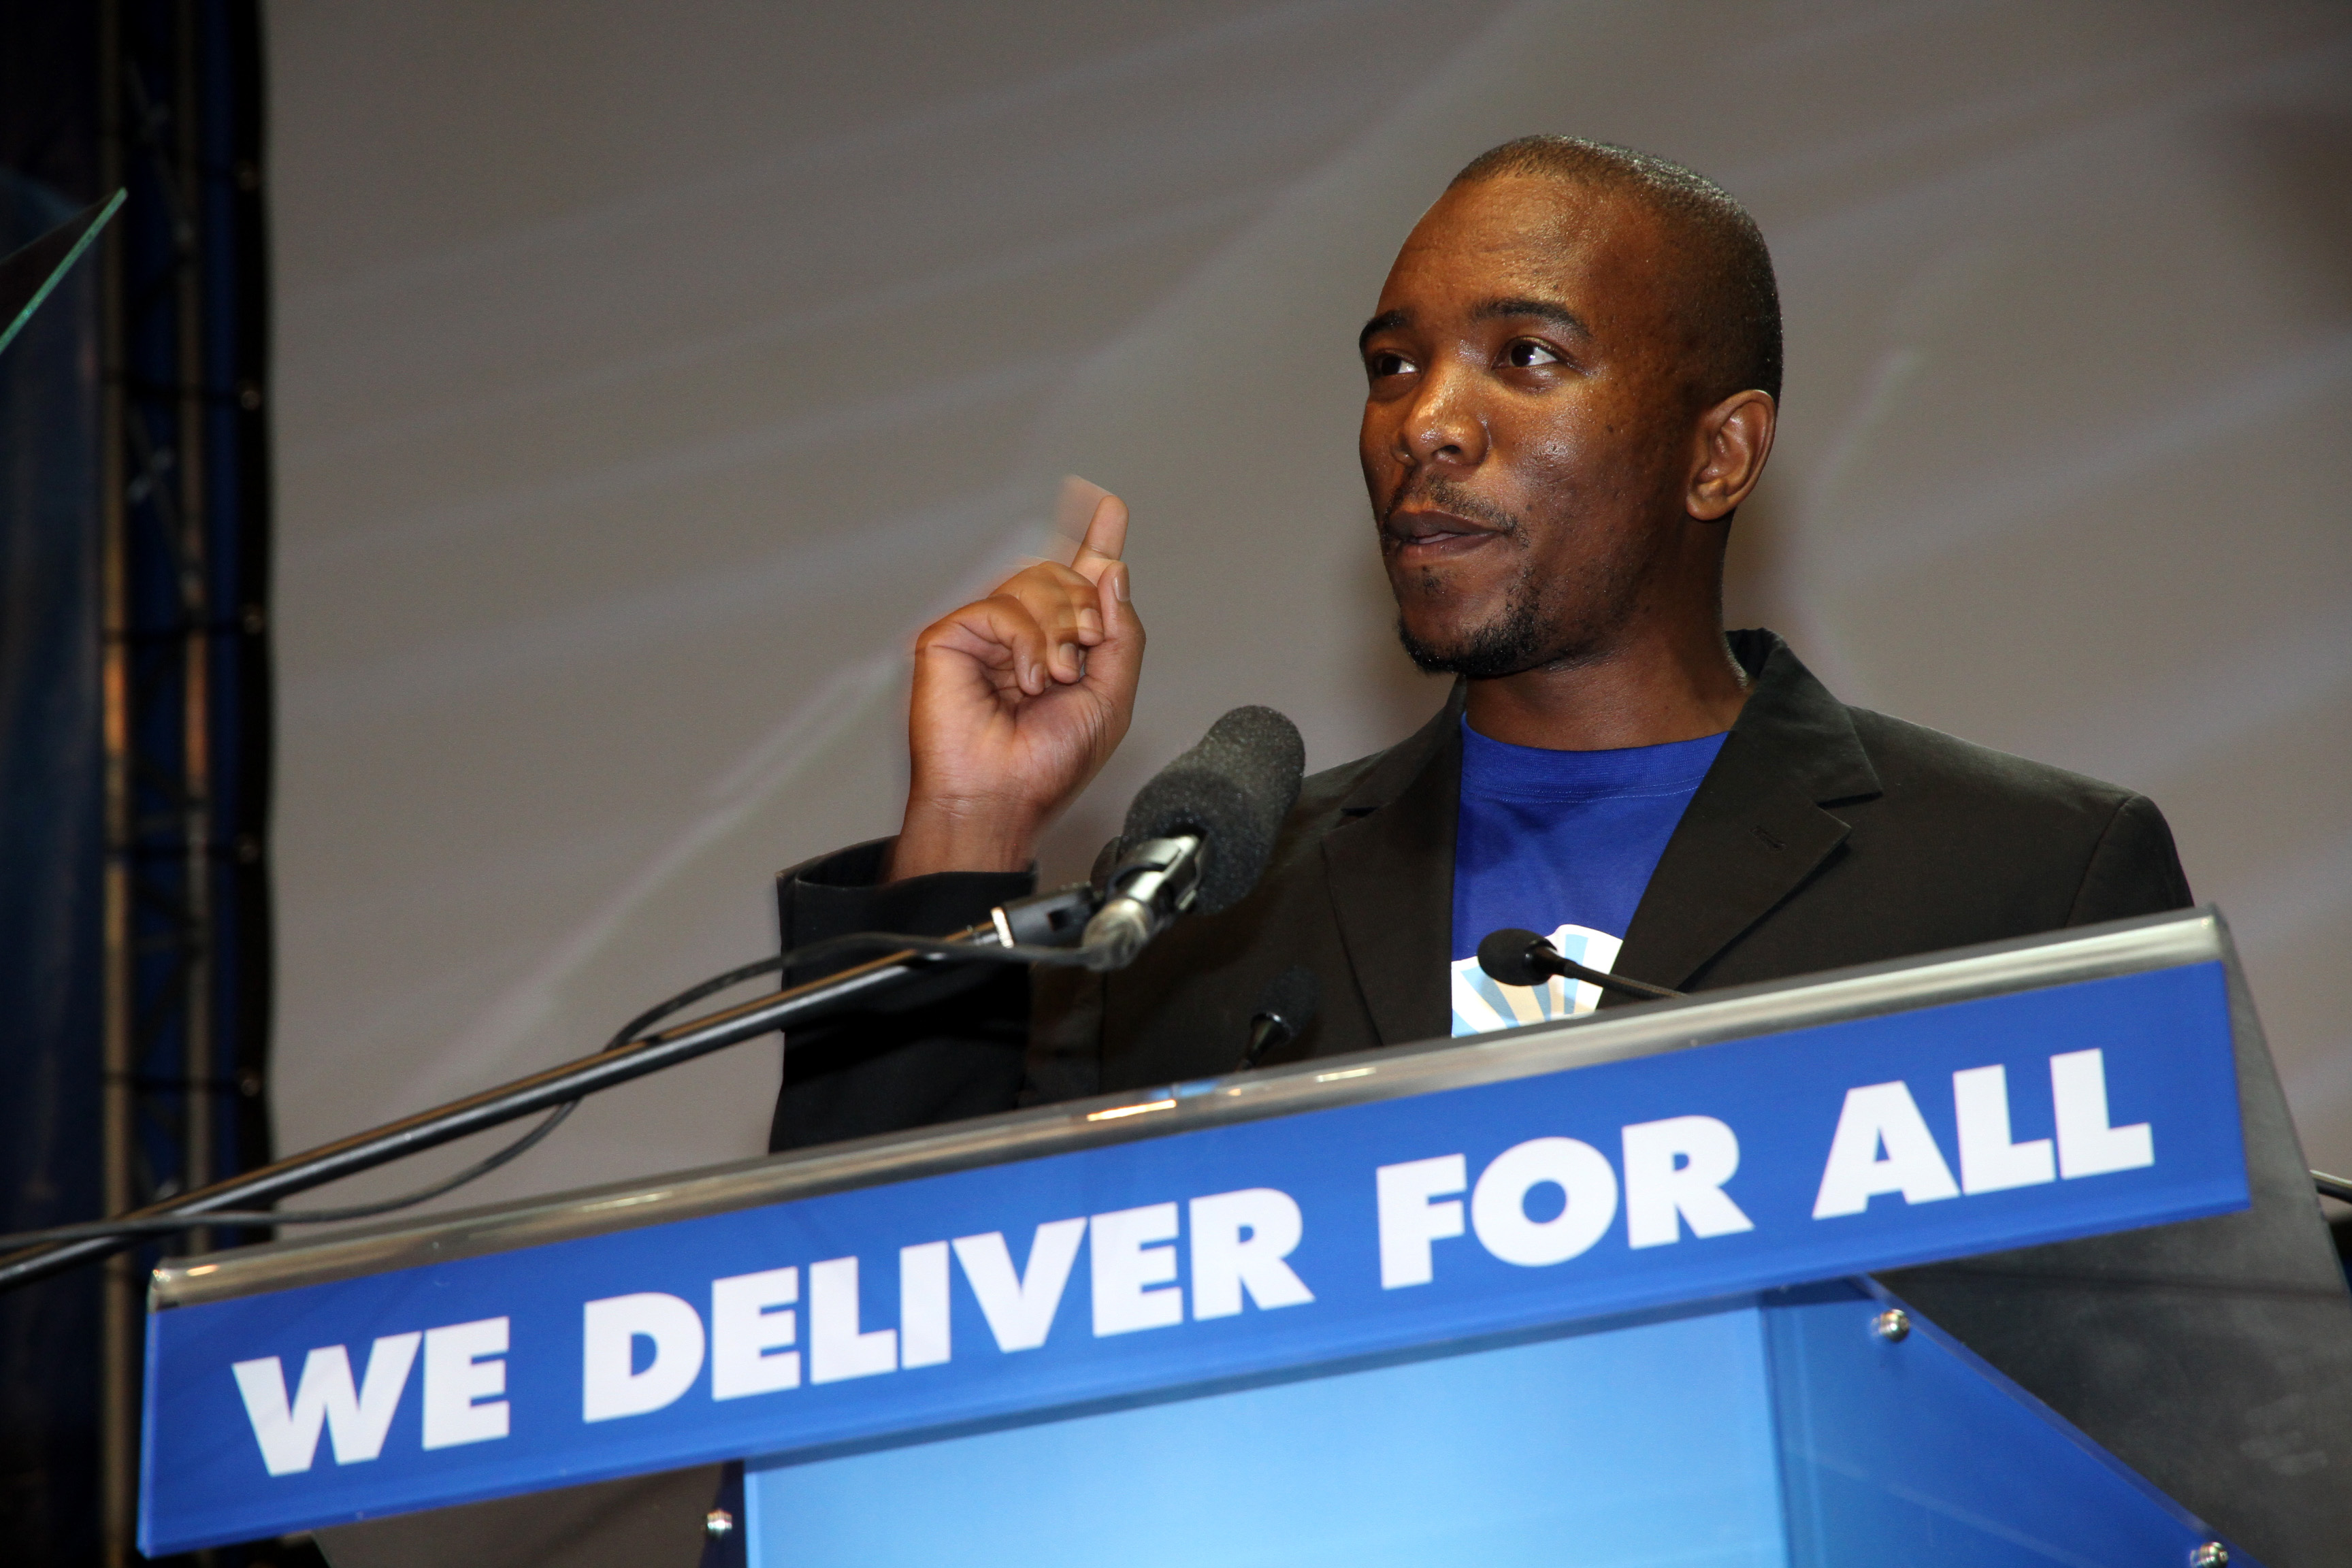 New DA leader 'passionate' about student issues